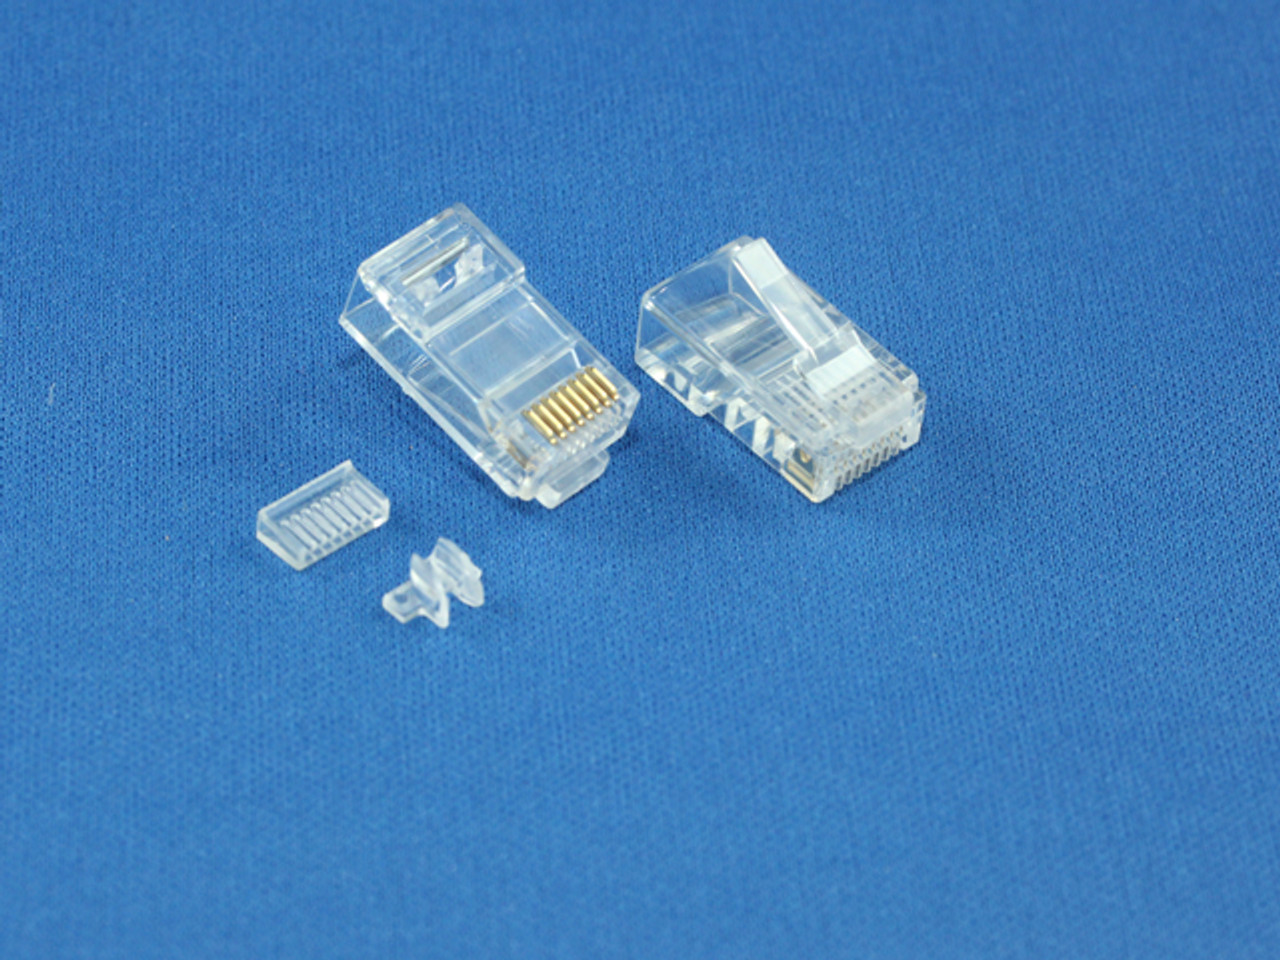 Product image for RJ-45 8P8C Connector For Cat6 Stranded Cable   CX Computer Superstore